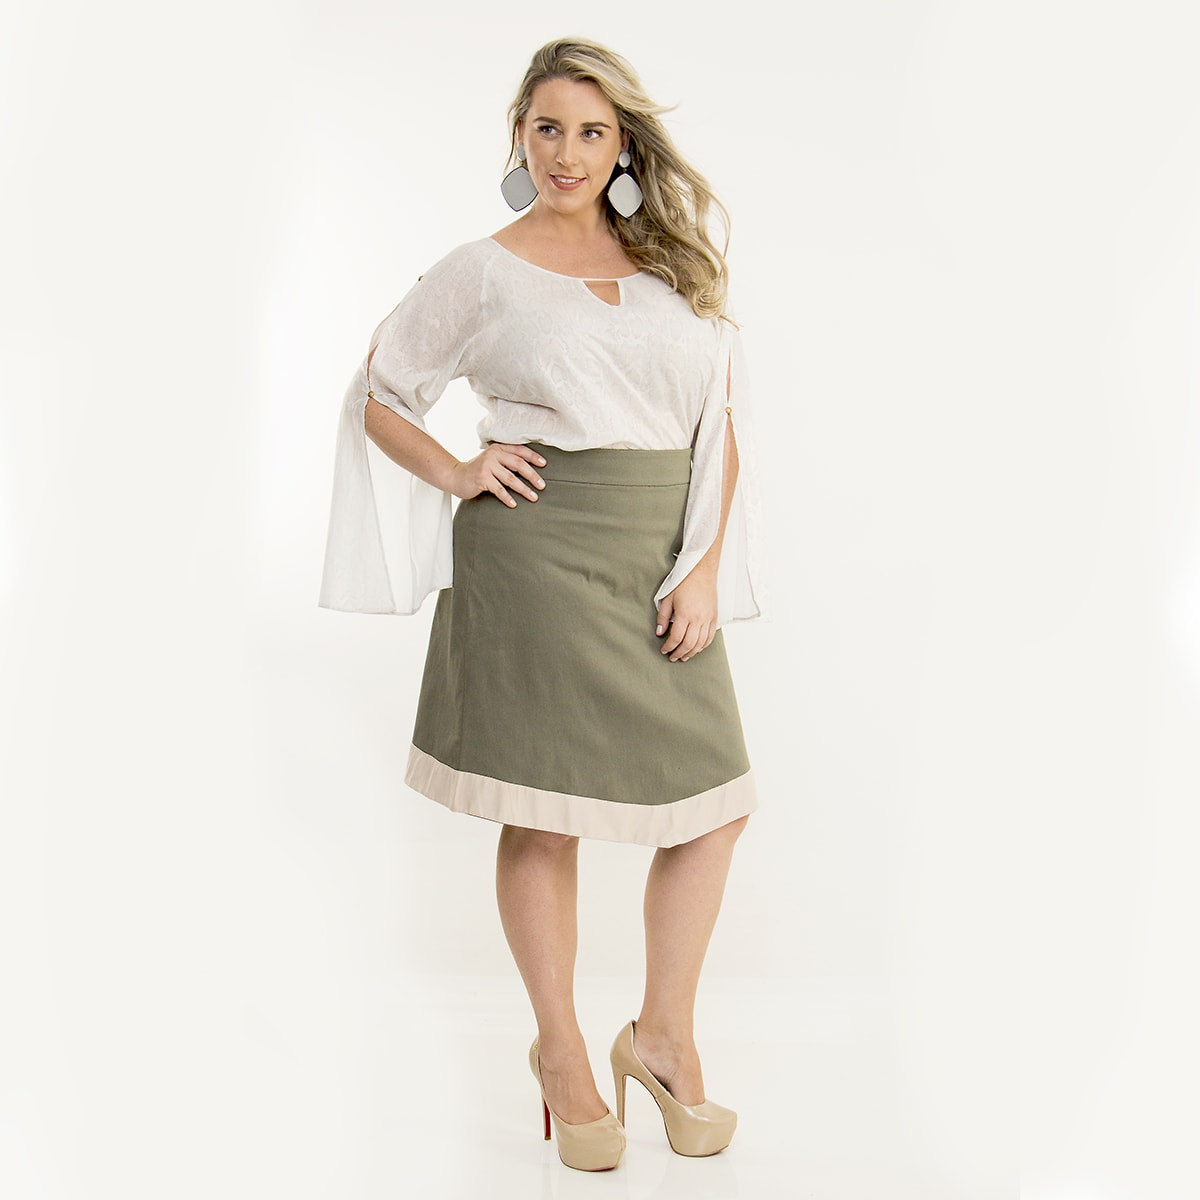 Saia Plus Size Curta Bicolor Encorpado com Elastano